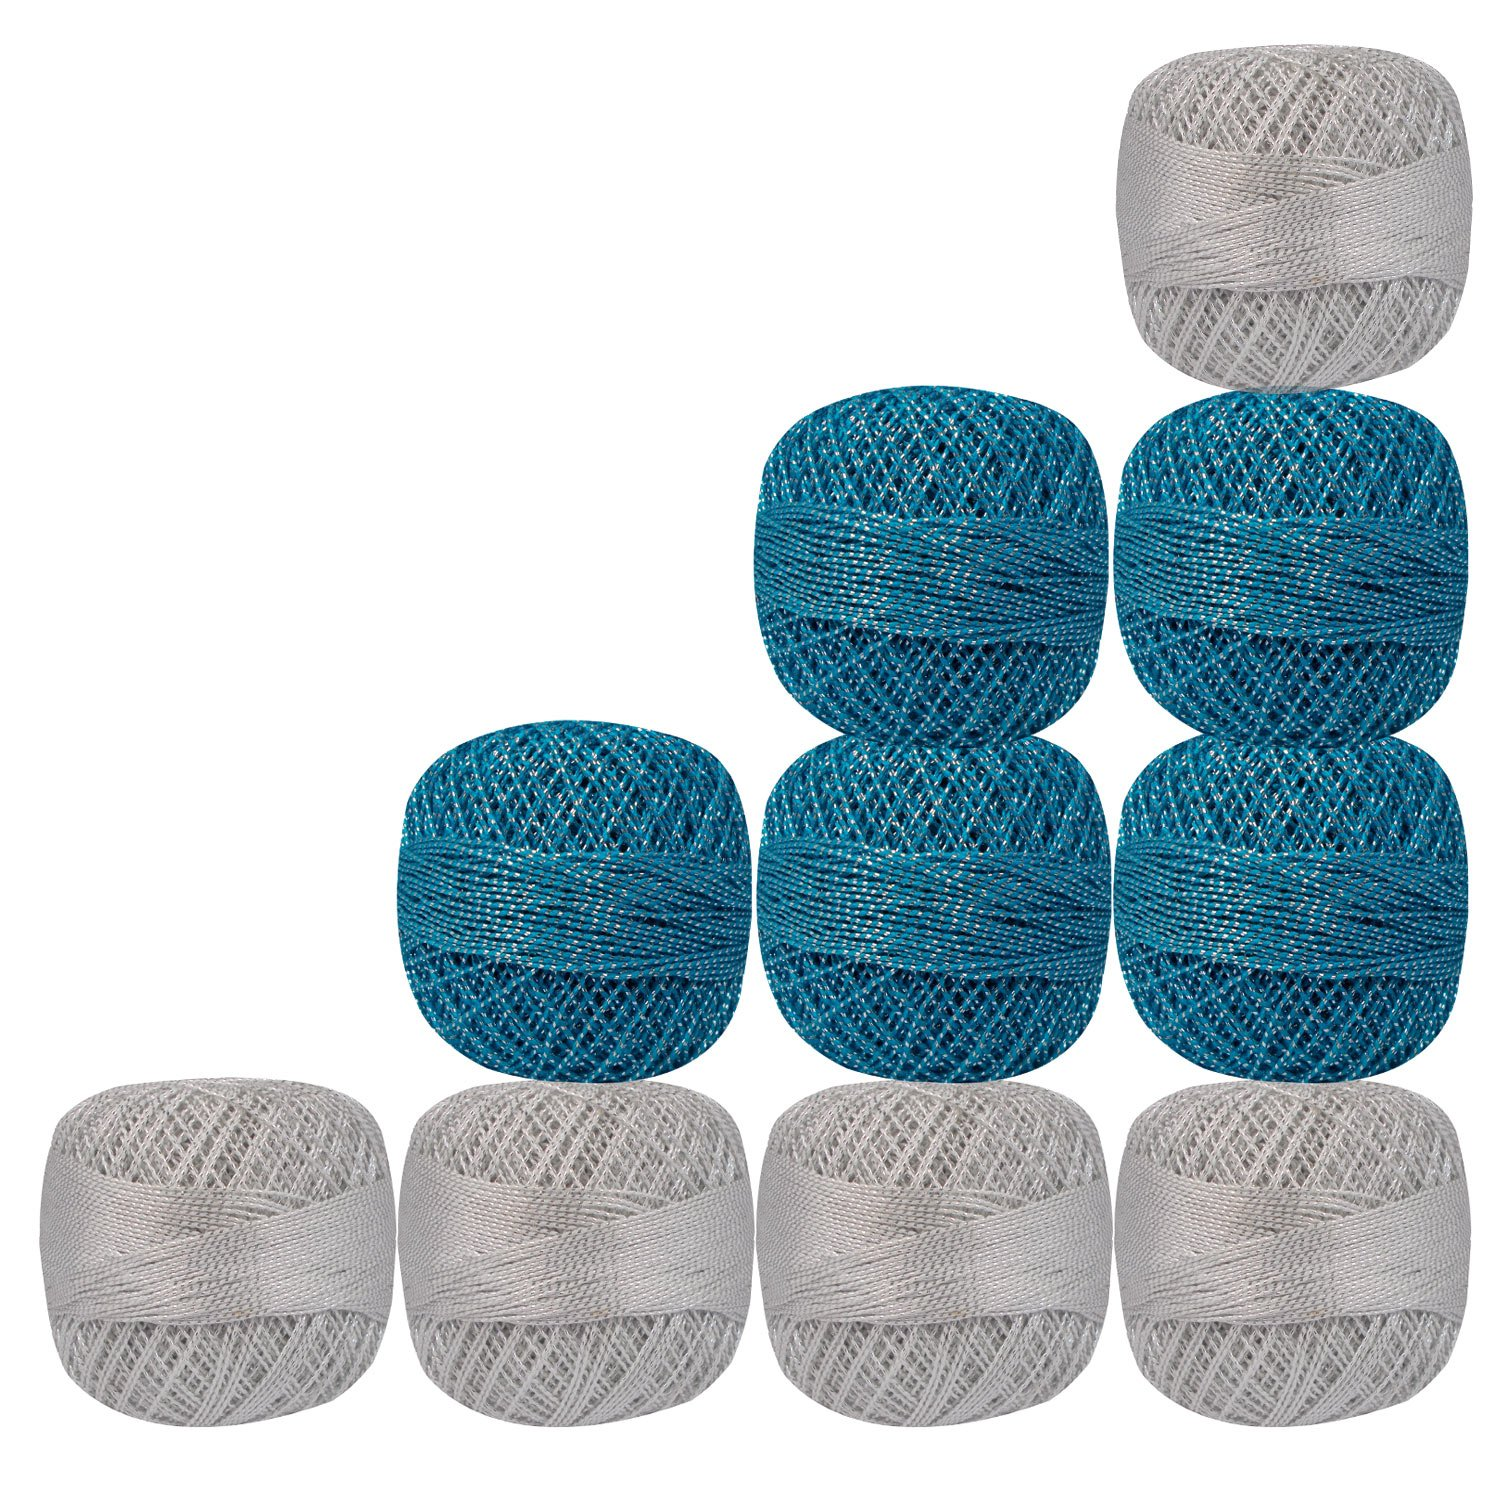 Set of 10 Pcs White And Blue with Metallic Silver Yarn Tatting Thread Double Color Cotton Crochet Blue Skeins Lacey Craft Knitting Doilies